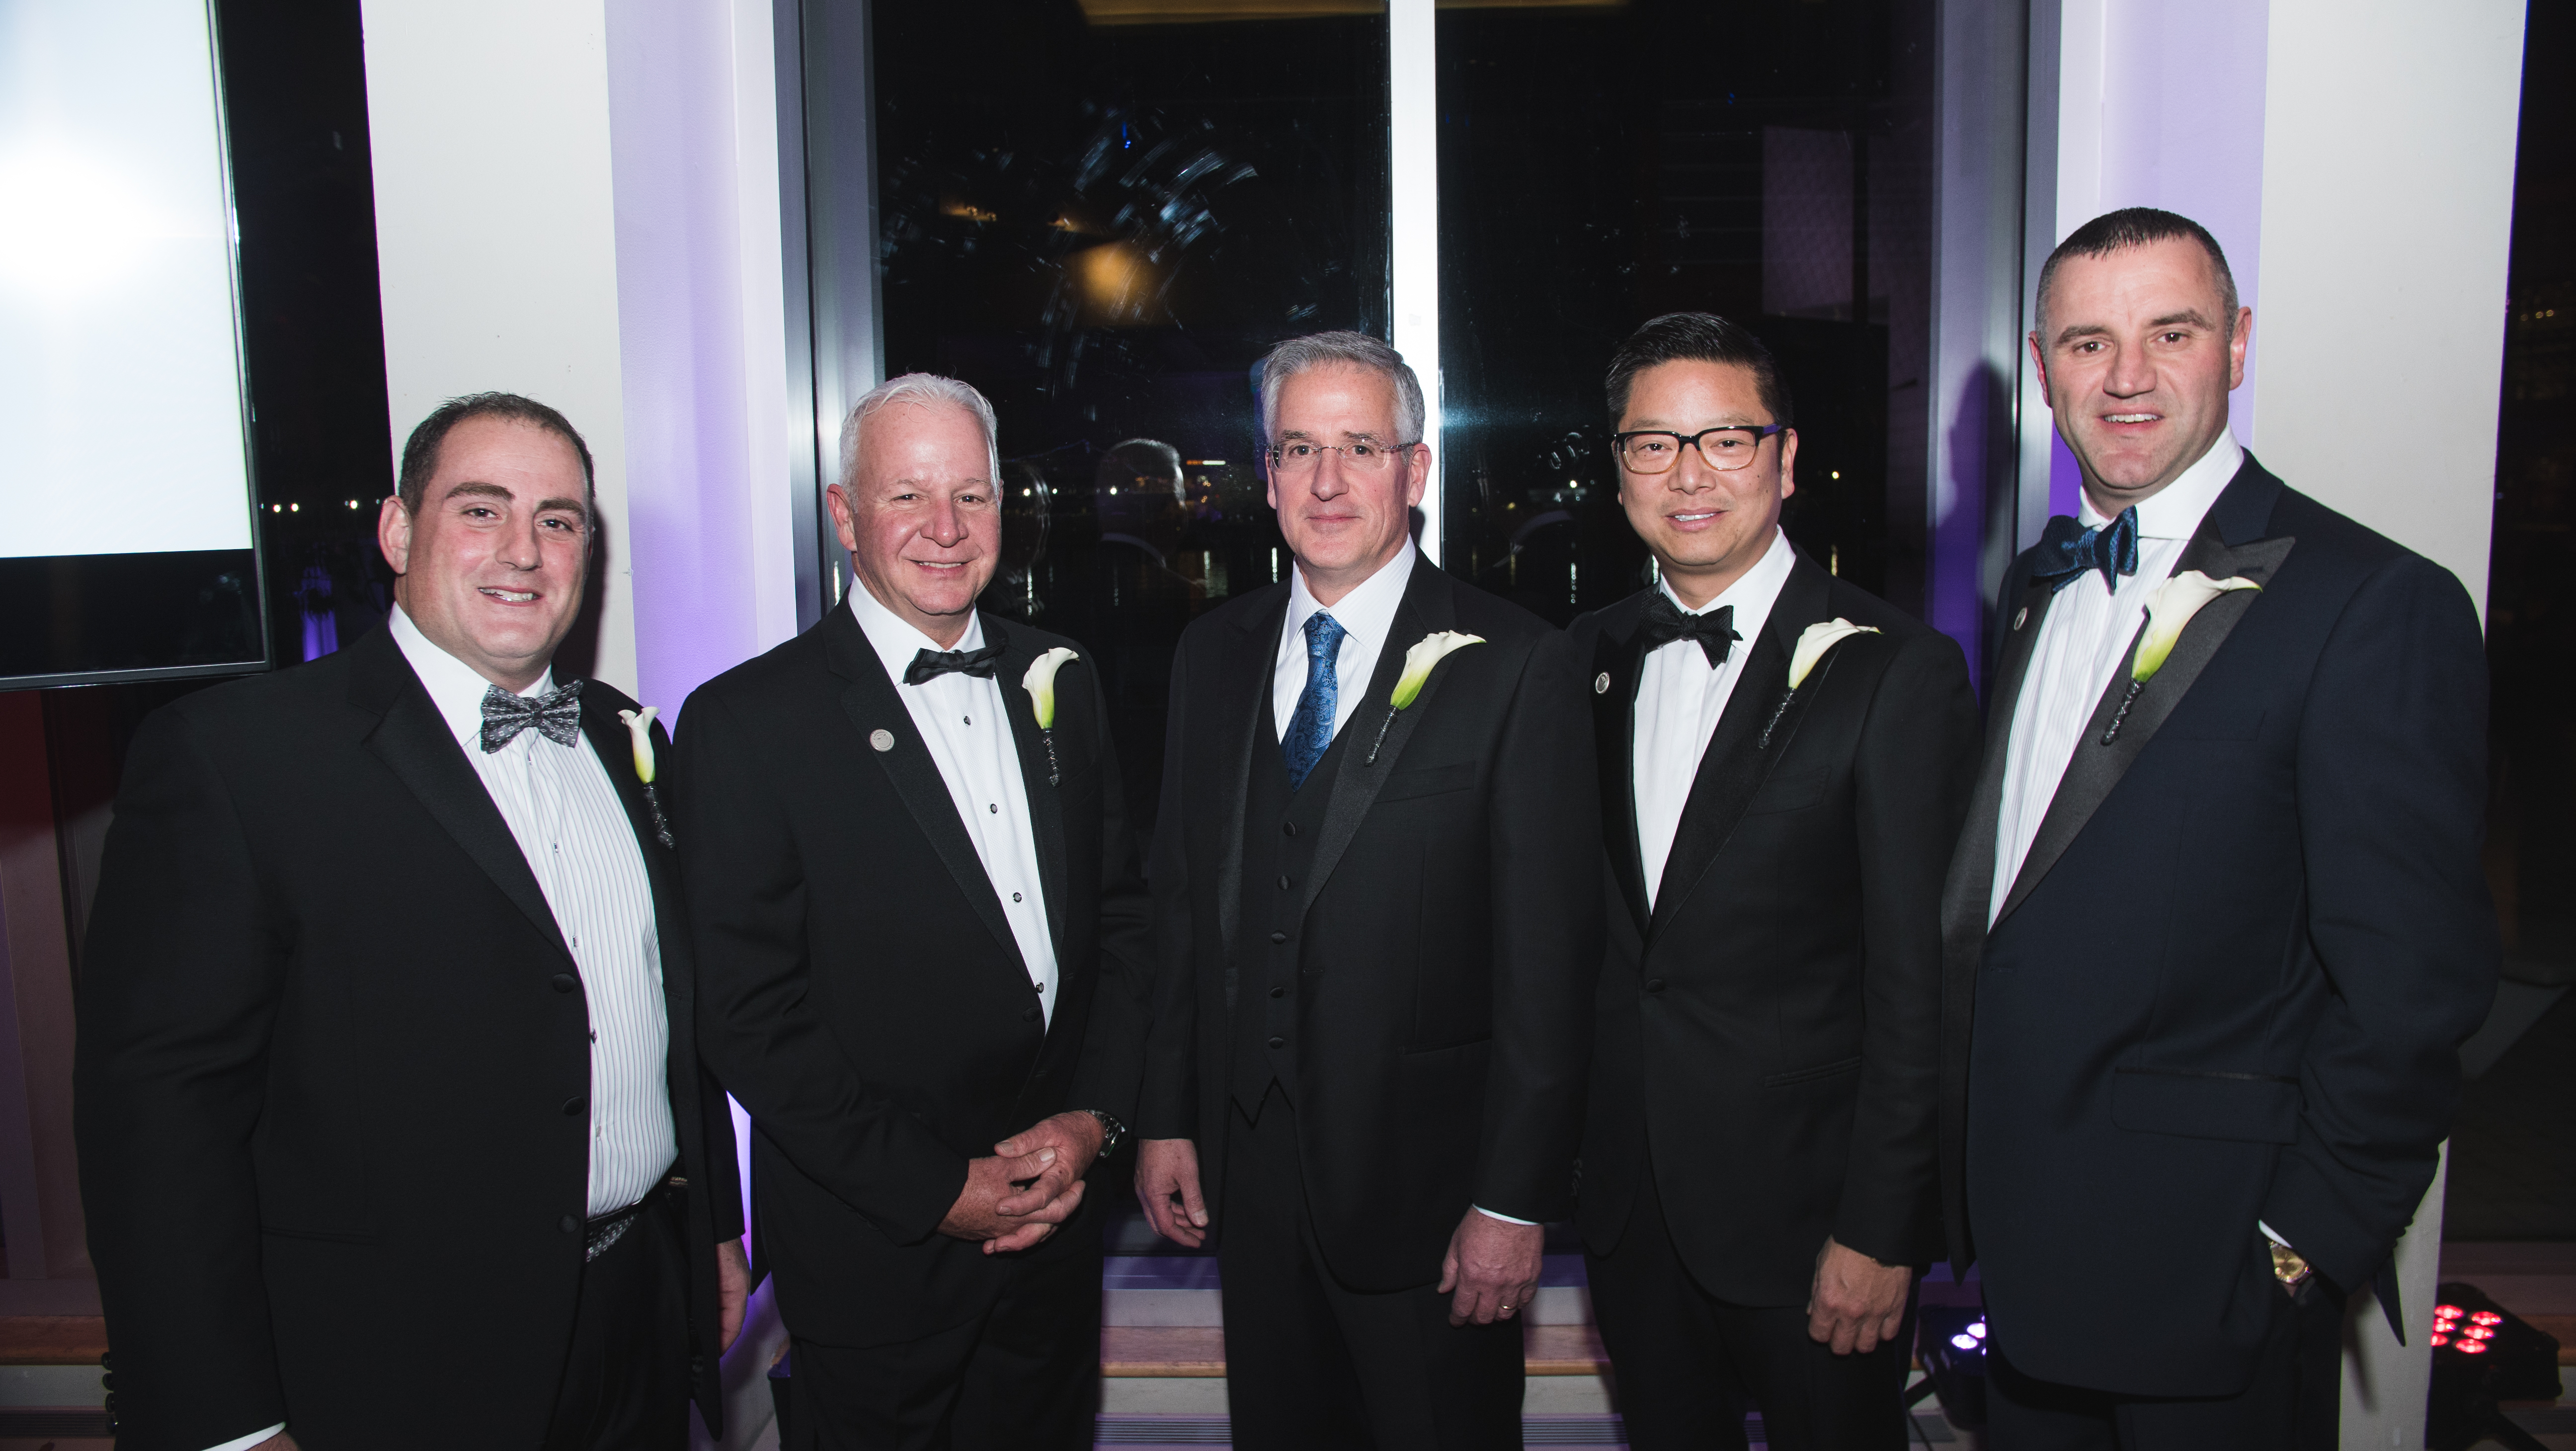 Caption: From L-R, Lou Vitantonio, David Waikem, Kevin Joyce, Joey Huang, Paul Hrnchar